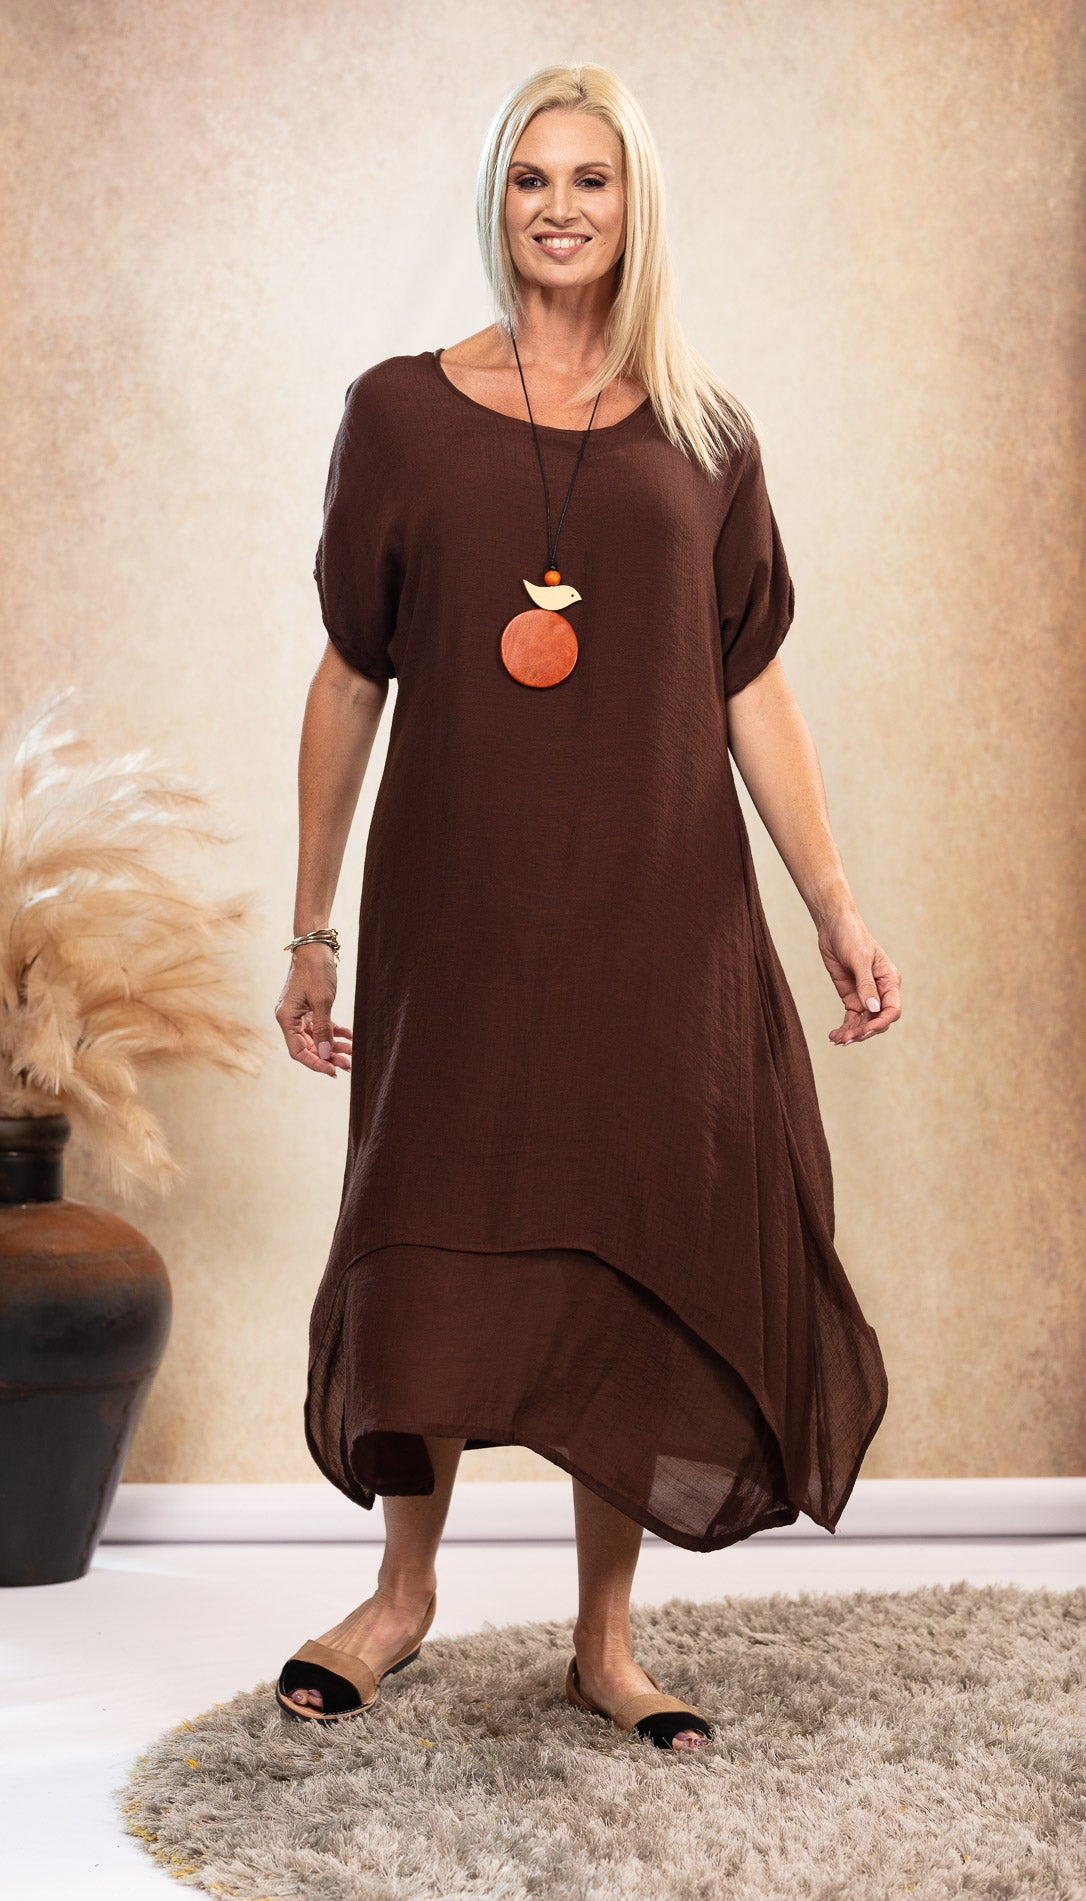 Bamboo Dress in Chocolate with pockets Australian designed and owned